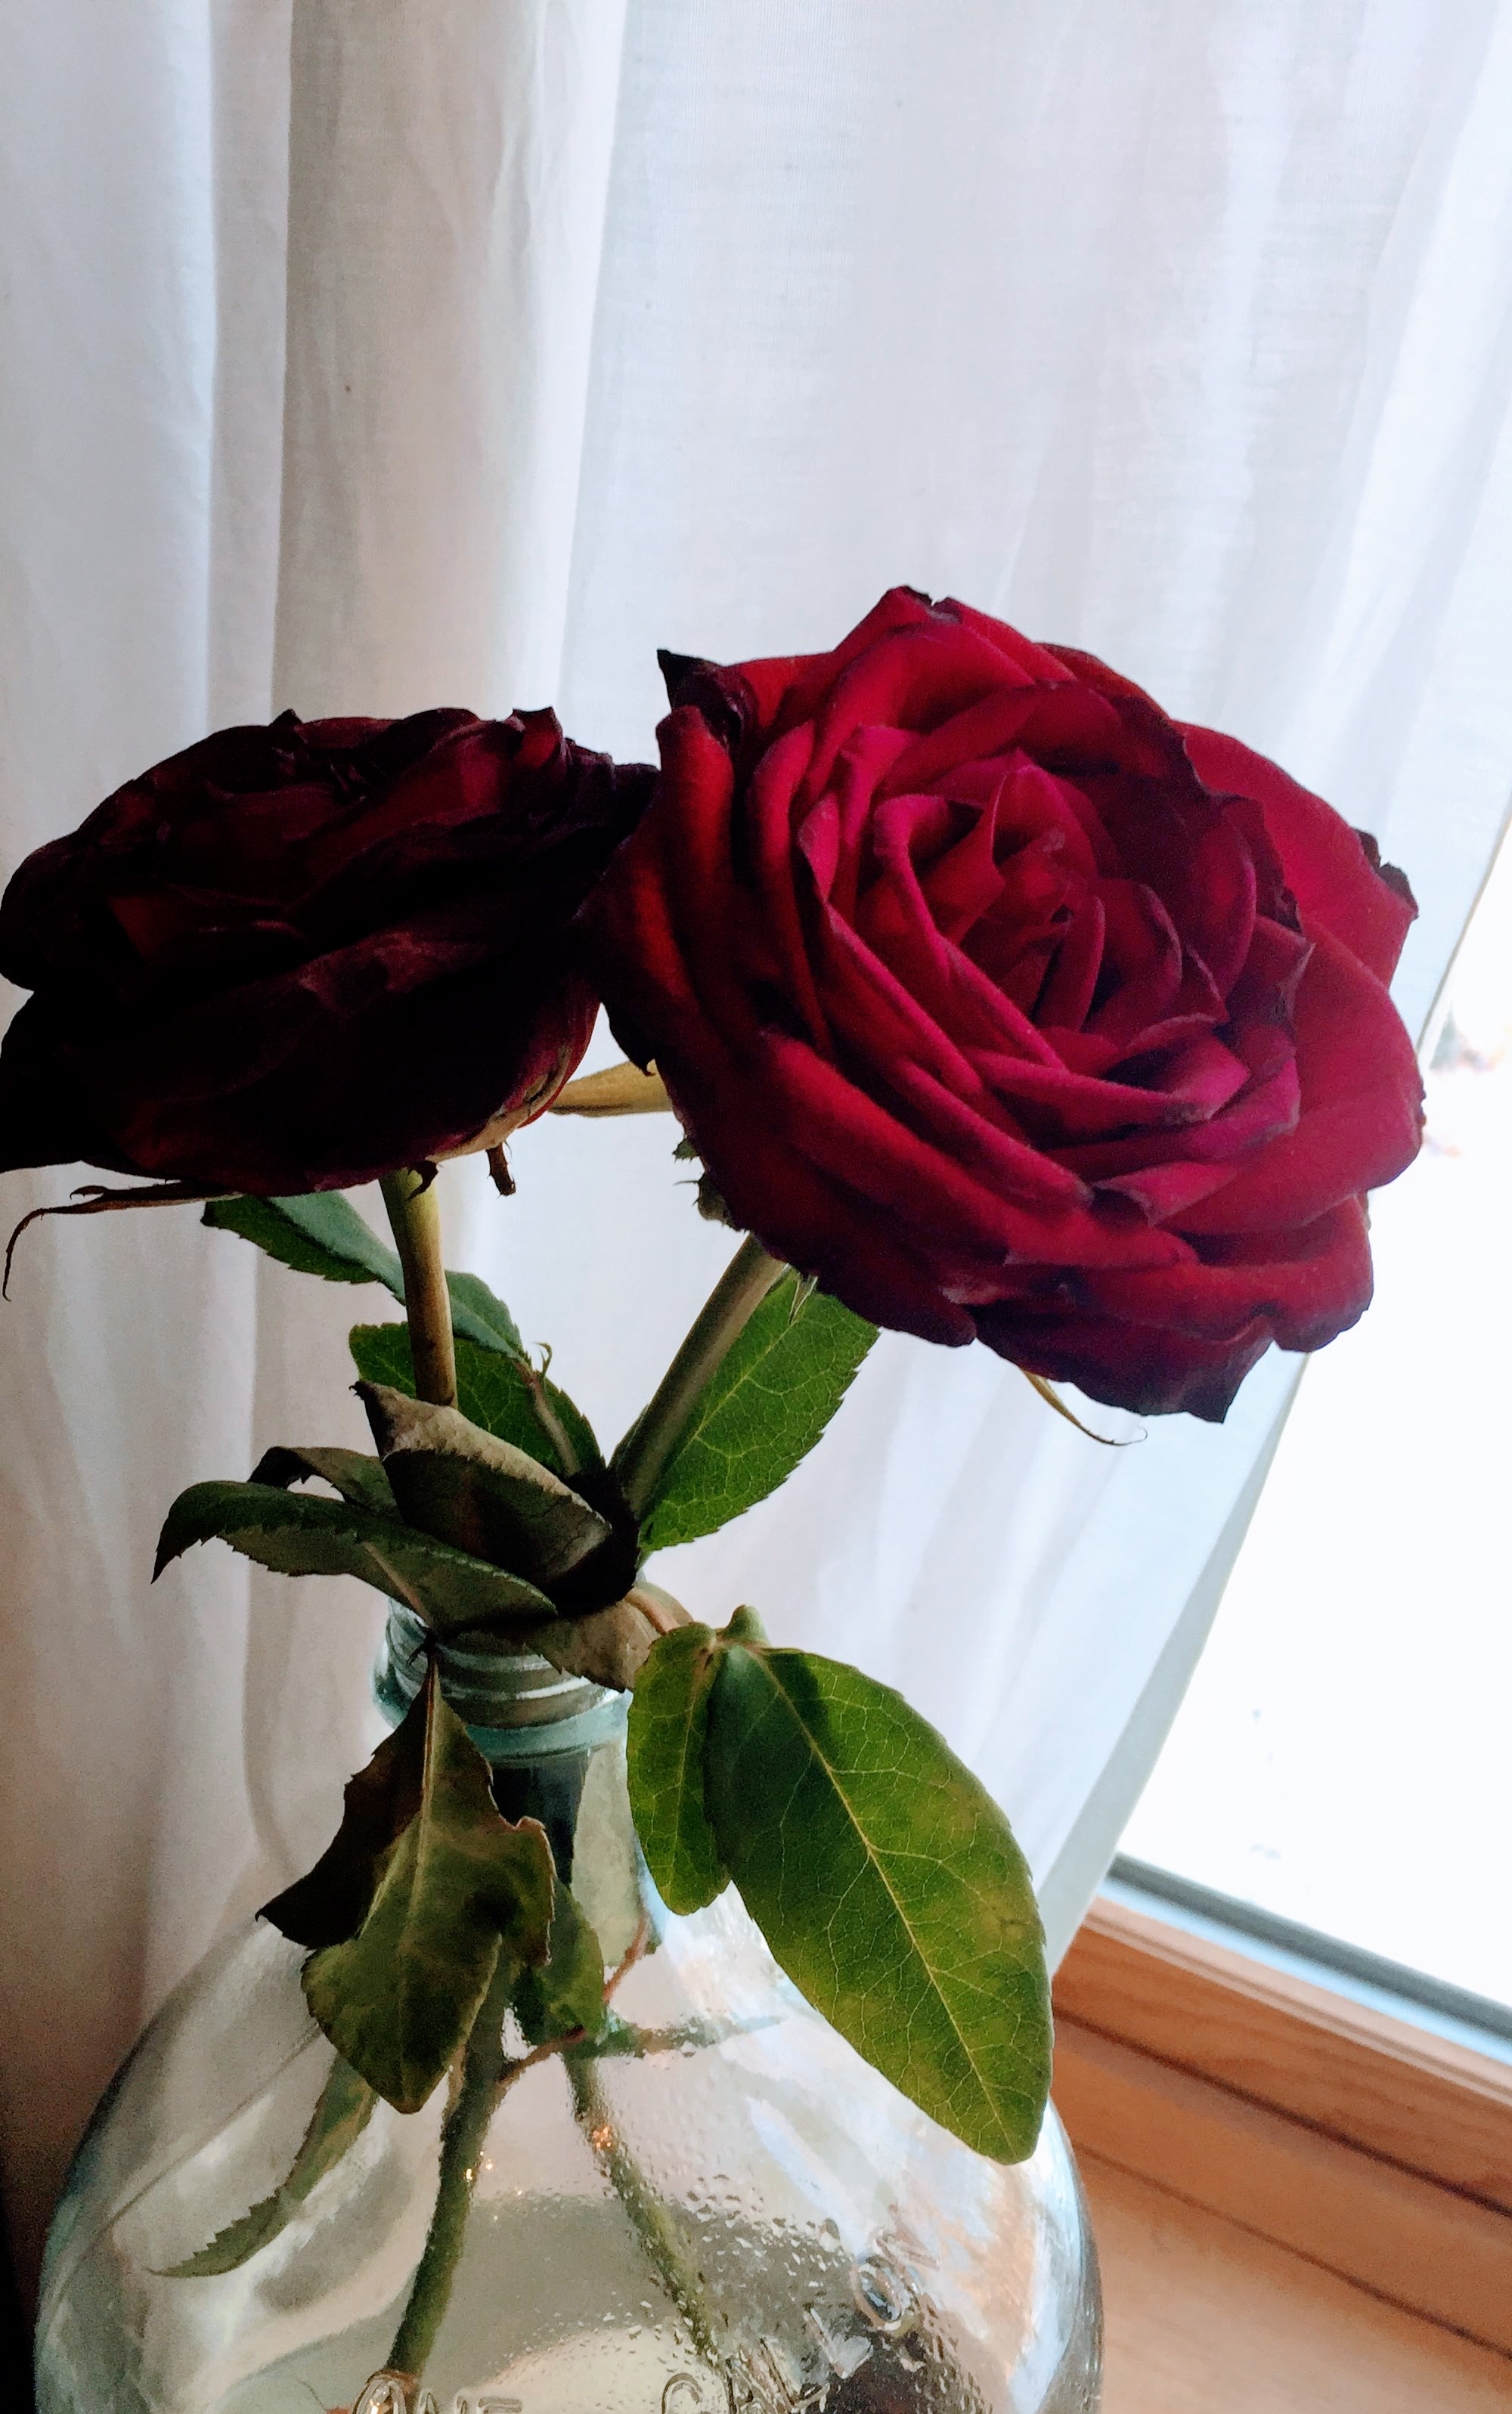 Do you love the fading of roses that probably should be composted? Keep the the beauty that feeds your soul regardless of what others may say. -